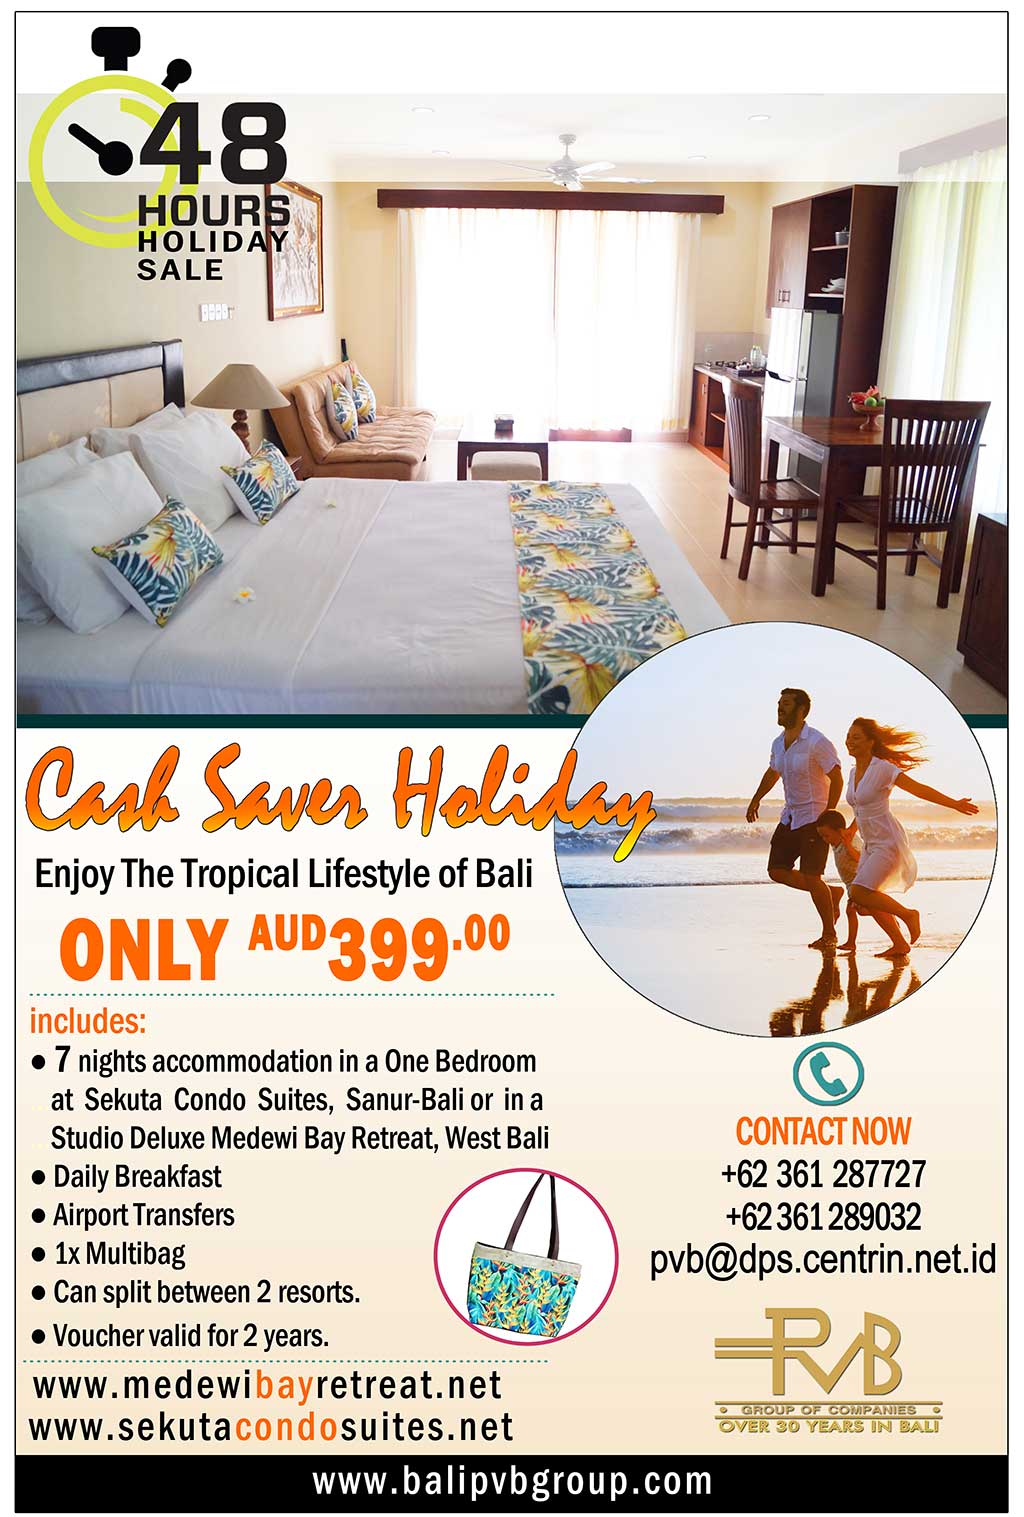 BALI : Cash Saver Holiday- Only AU$399 for 2 person for 7 Nights